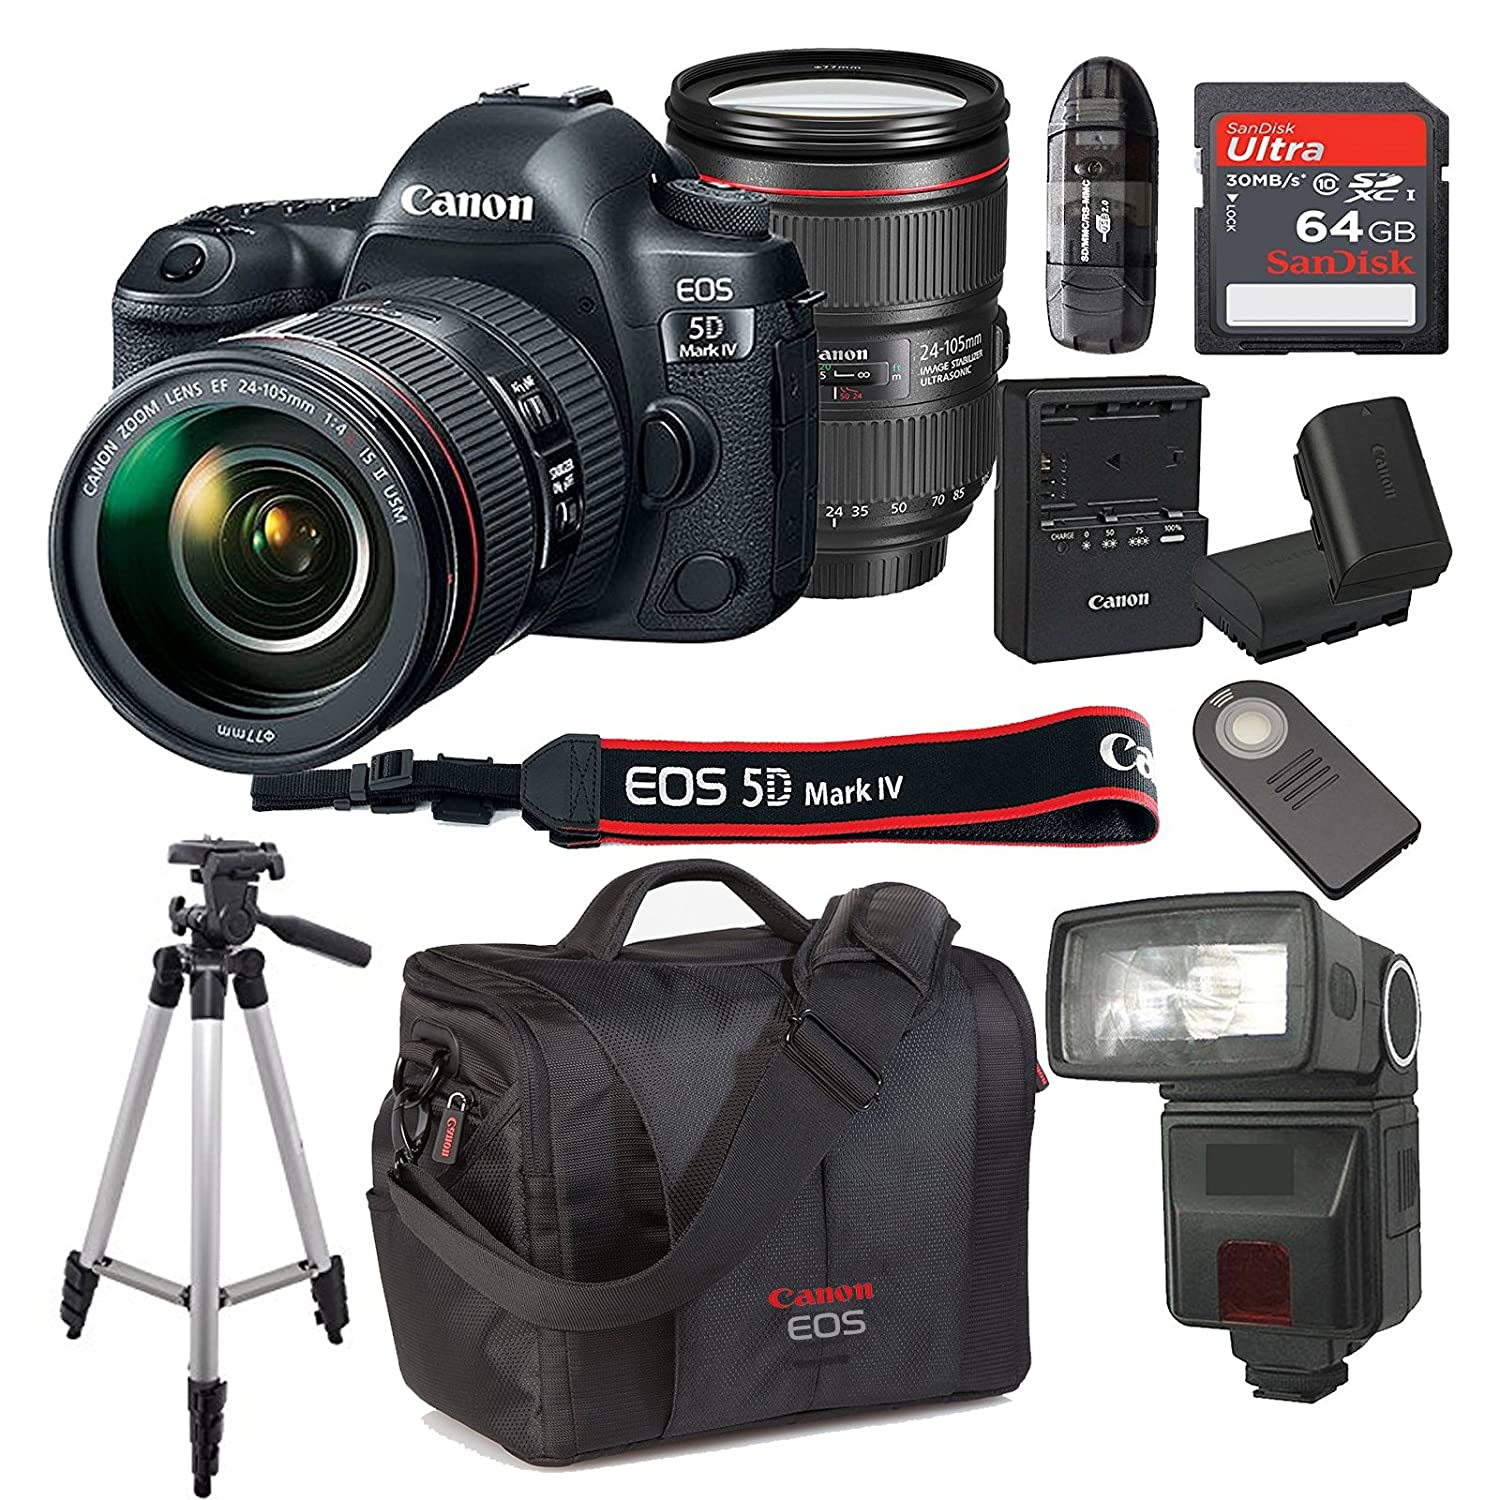 Canon Eos 5d Mark Iv With 24 105mm F 4 L Is Ii Usm Lens Body Only Camera Dslr Kit Bundle 64gb High Speed Memory Card 300dg Deluxe Bag Wireless